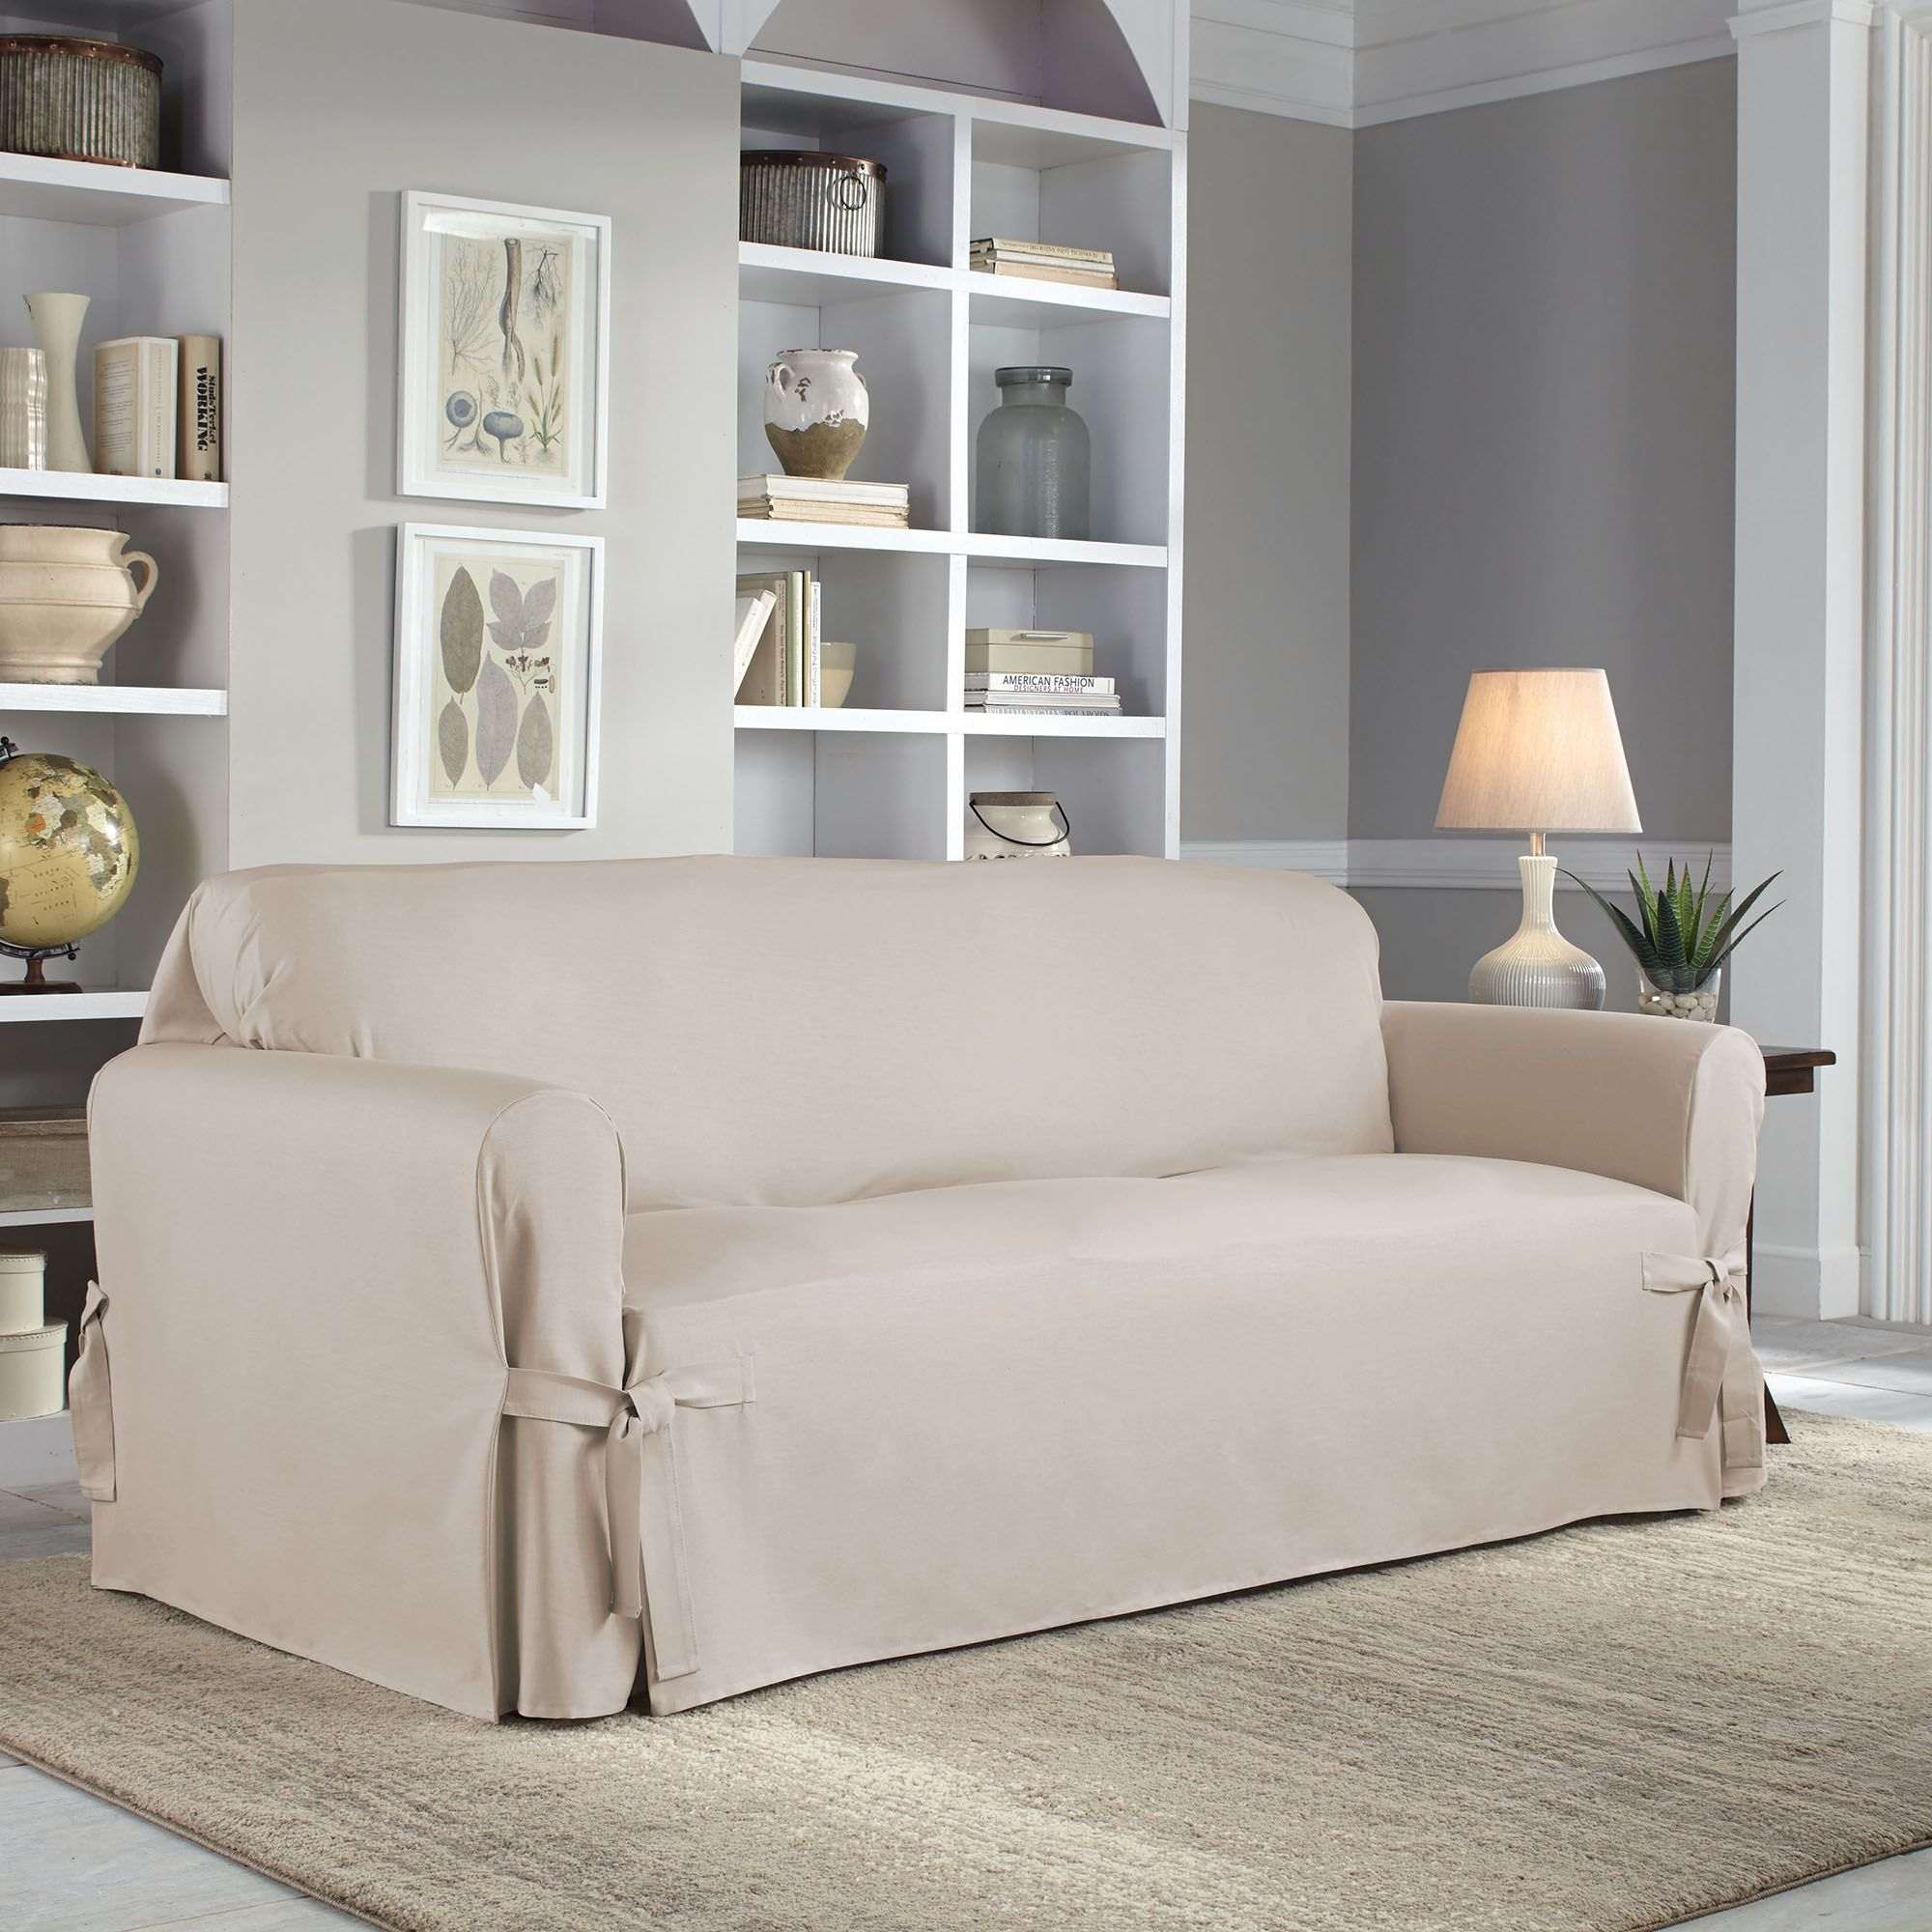 Perfect Fit Classic Relaxed Fit Slipcover Collection Bed Bath